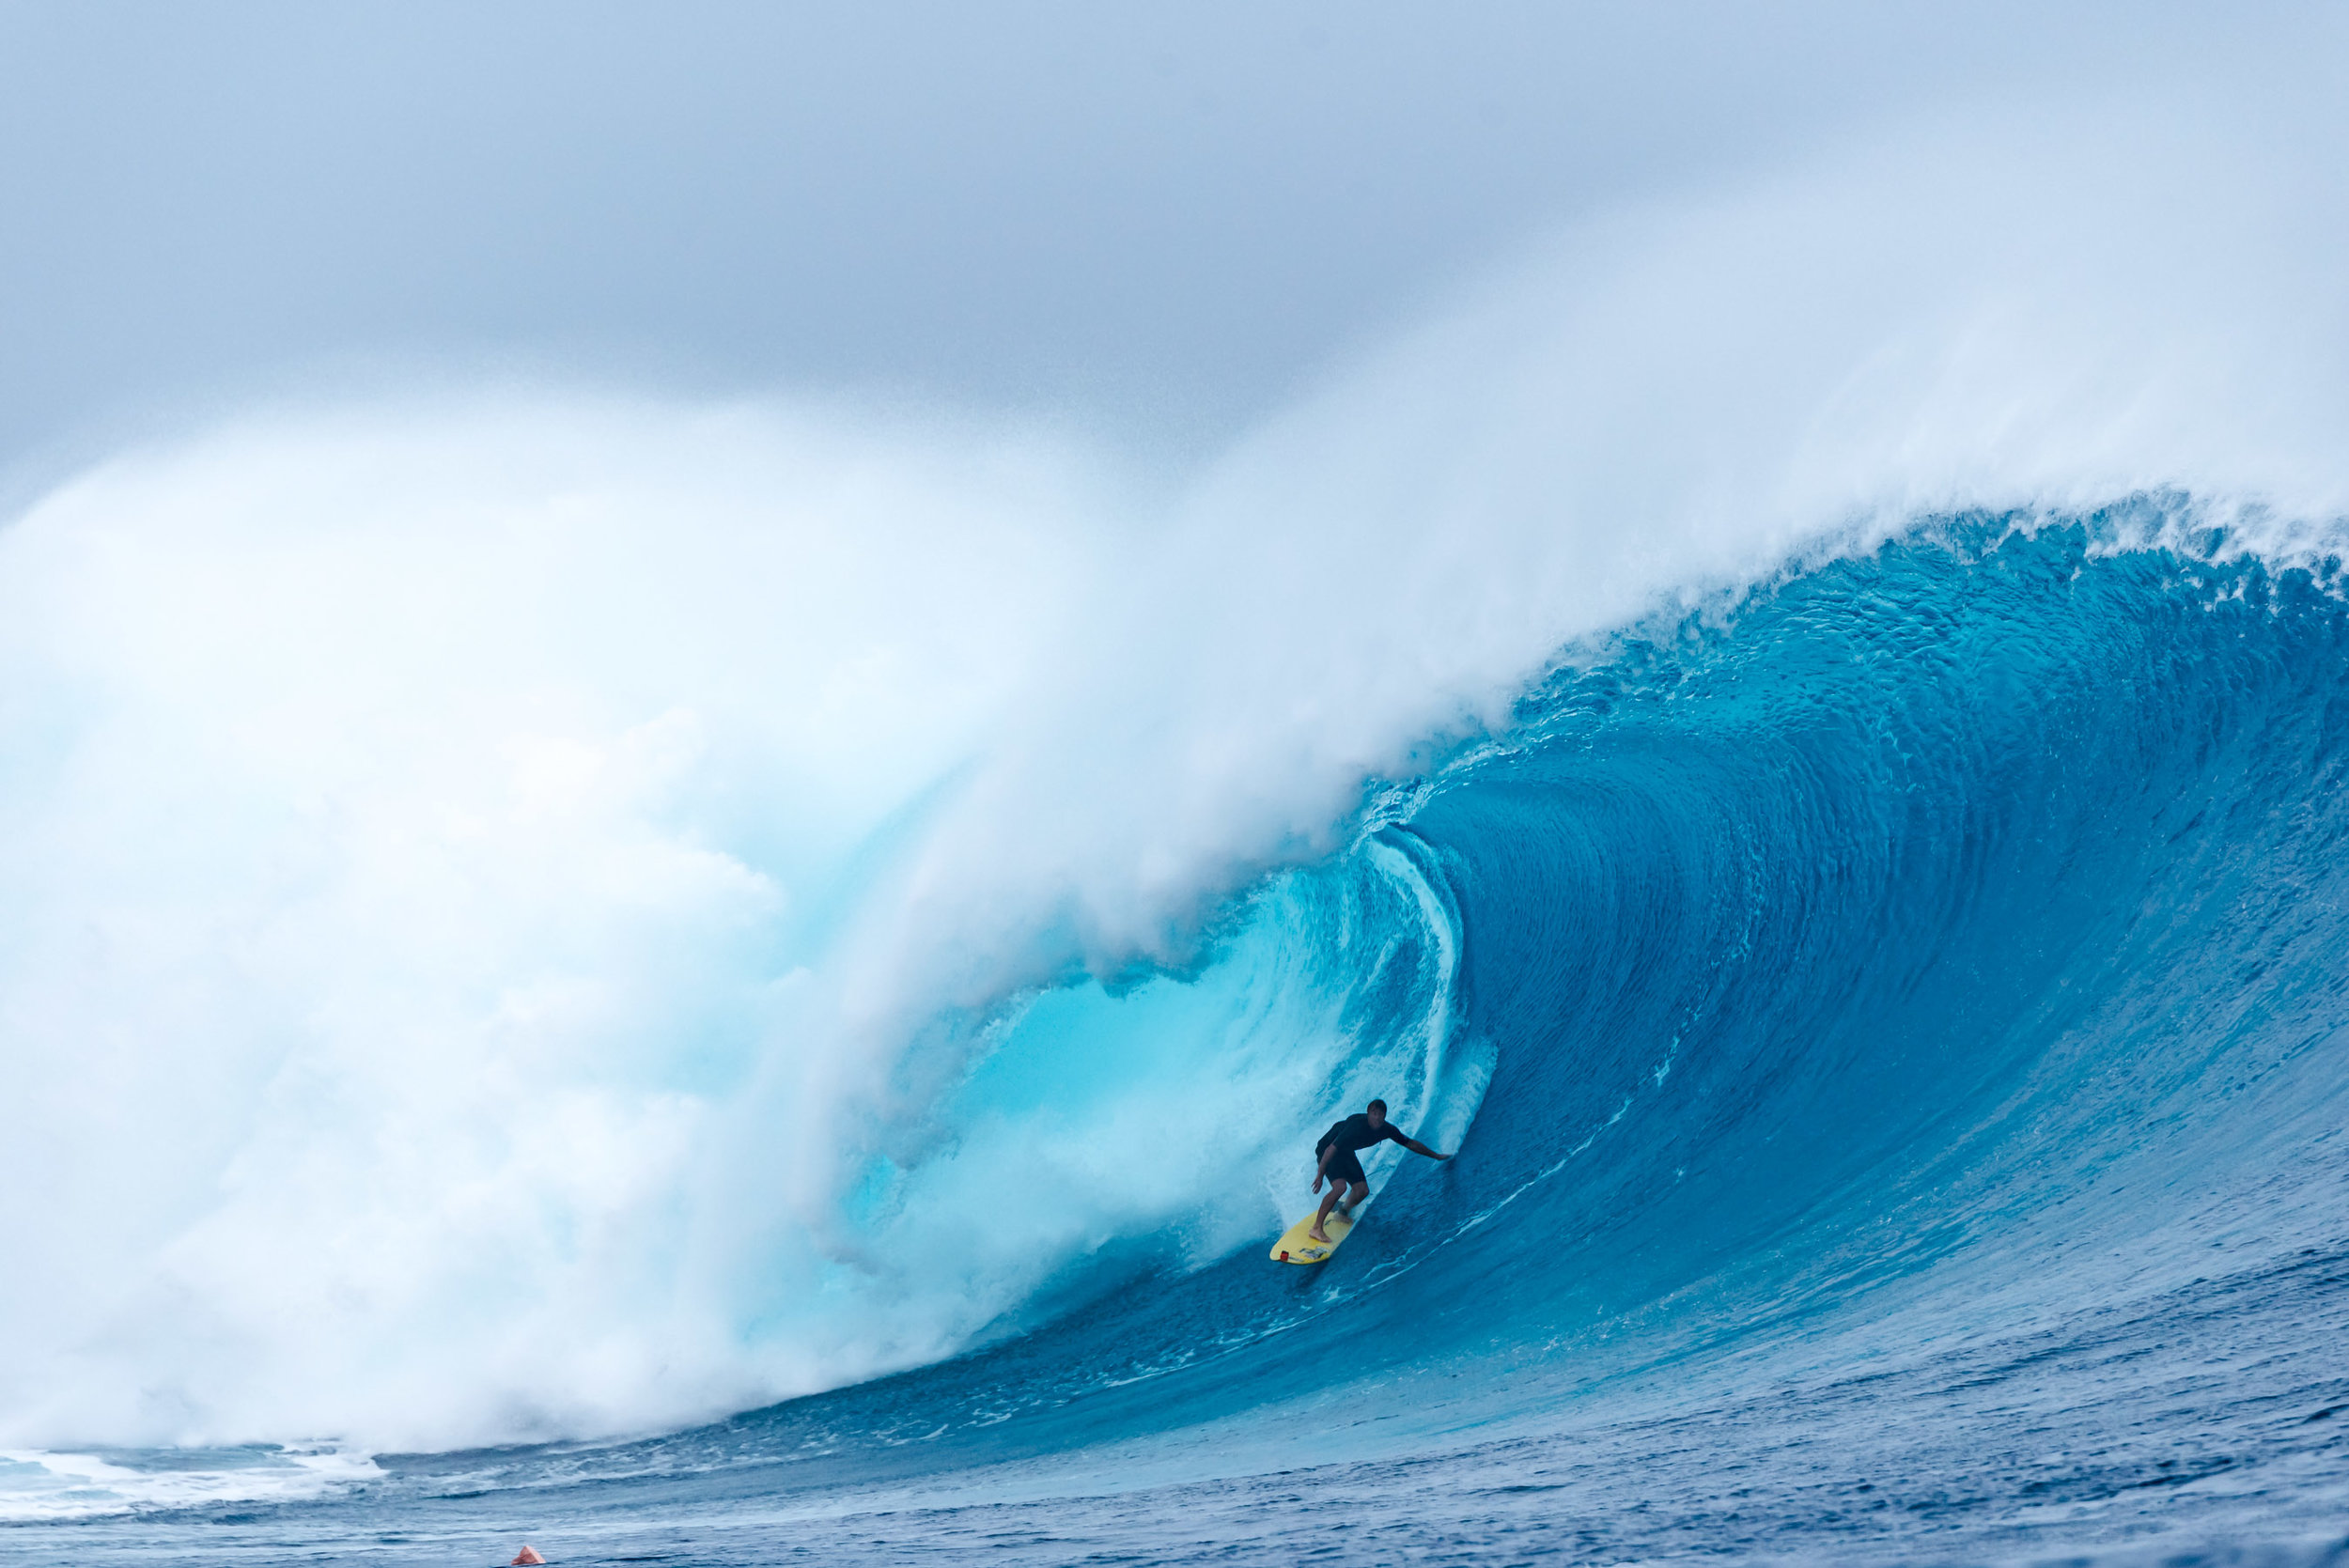 Sequence - How to take amazing surfing photos every time-10.jpg